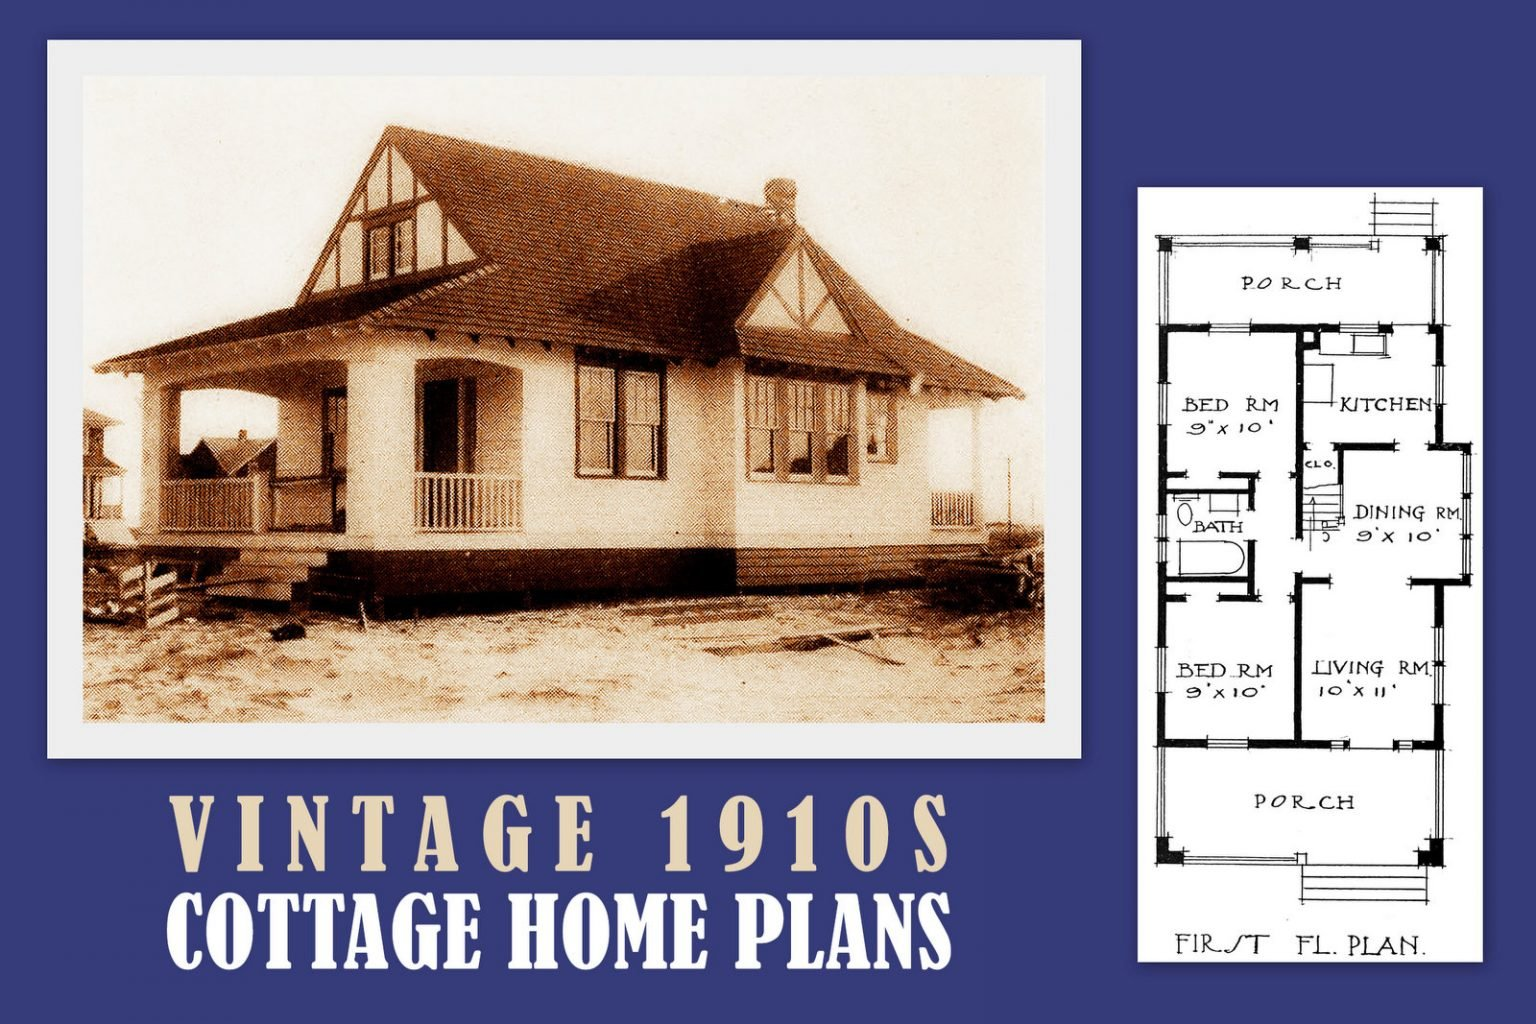 Vintage cottage home plans from 1910